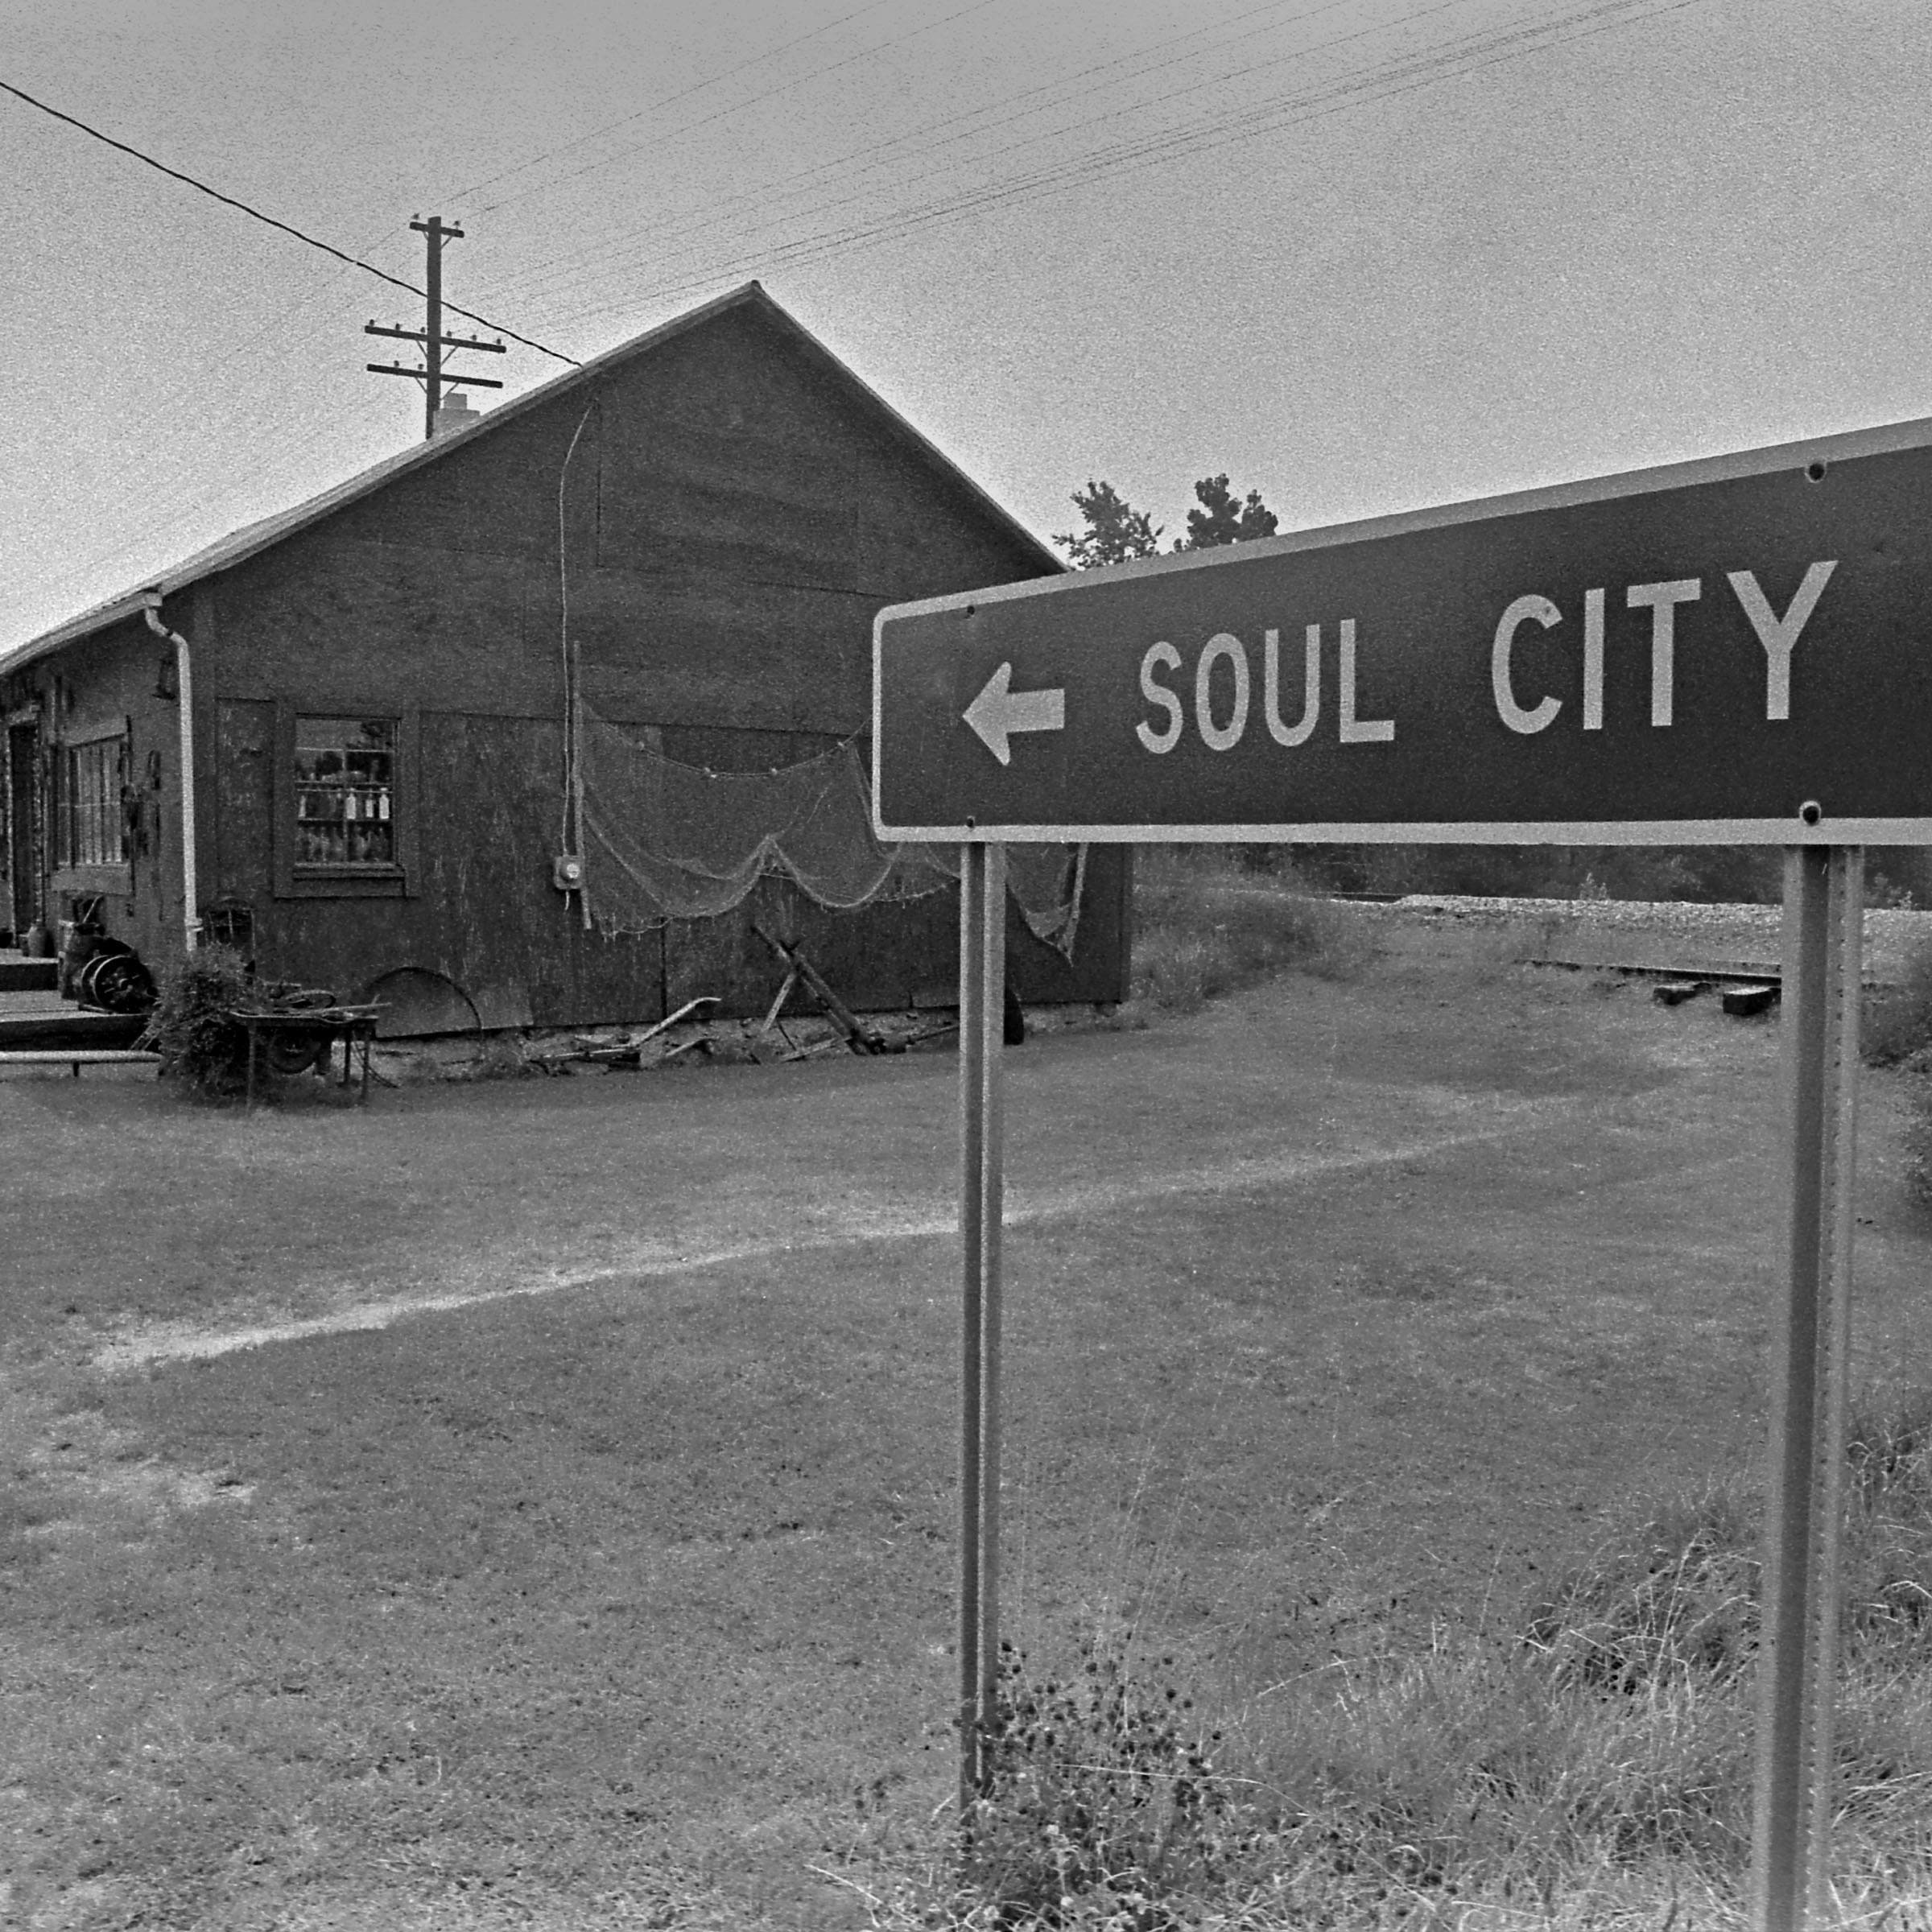 A black and white photo of a sign pointing to Soul City